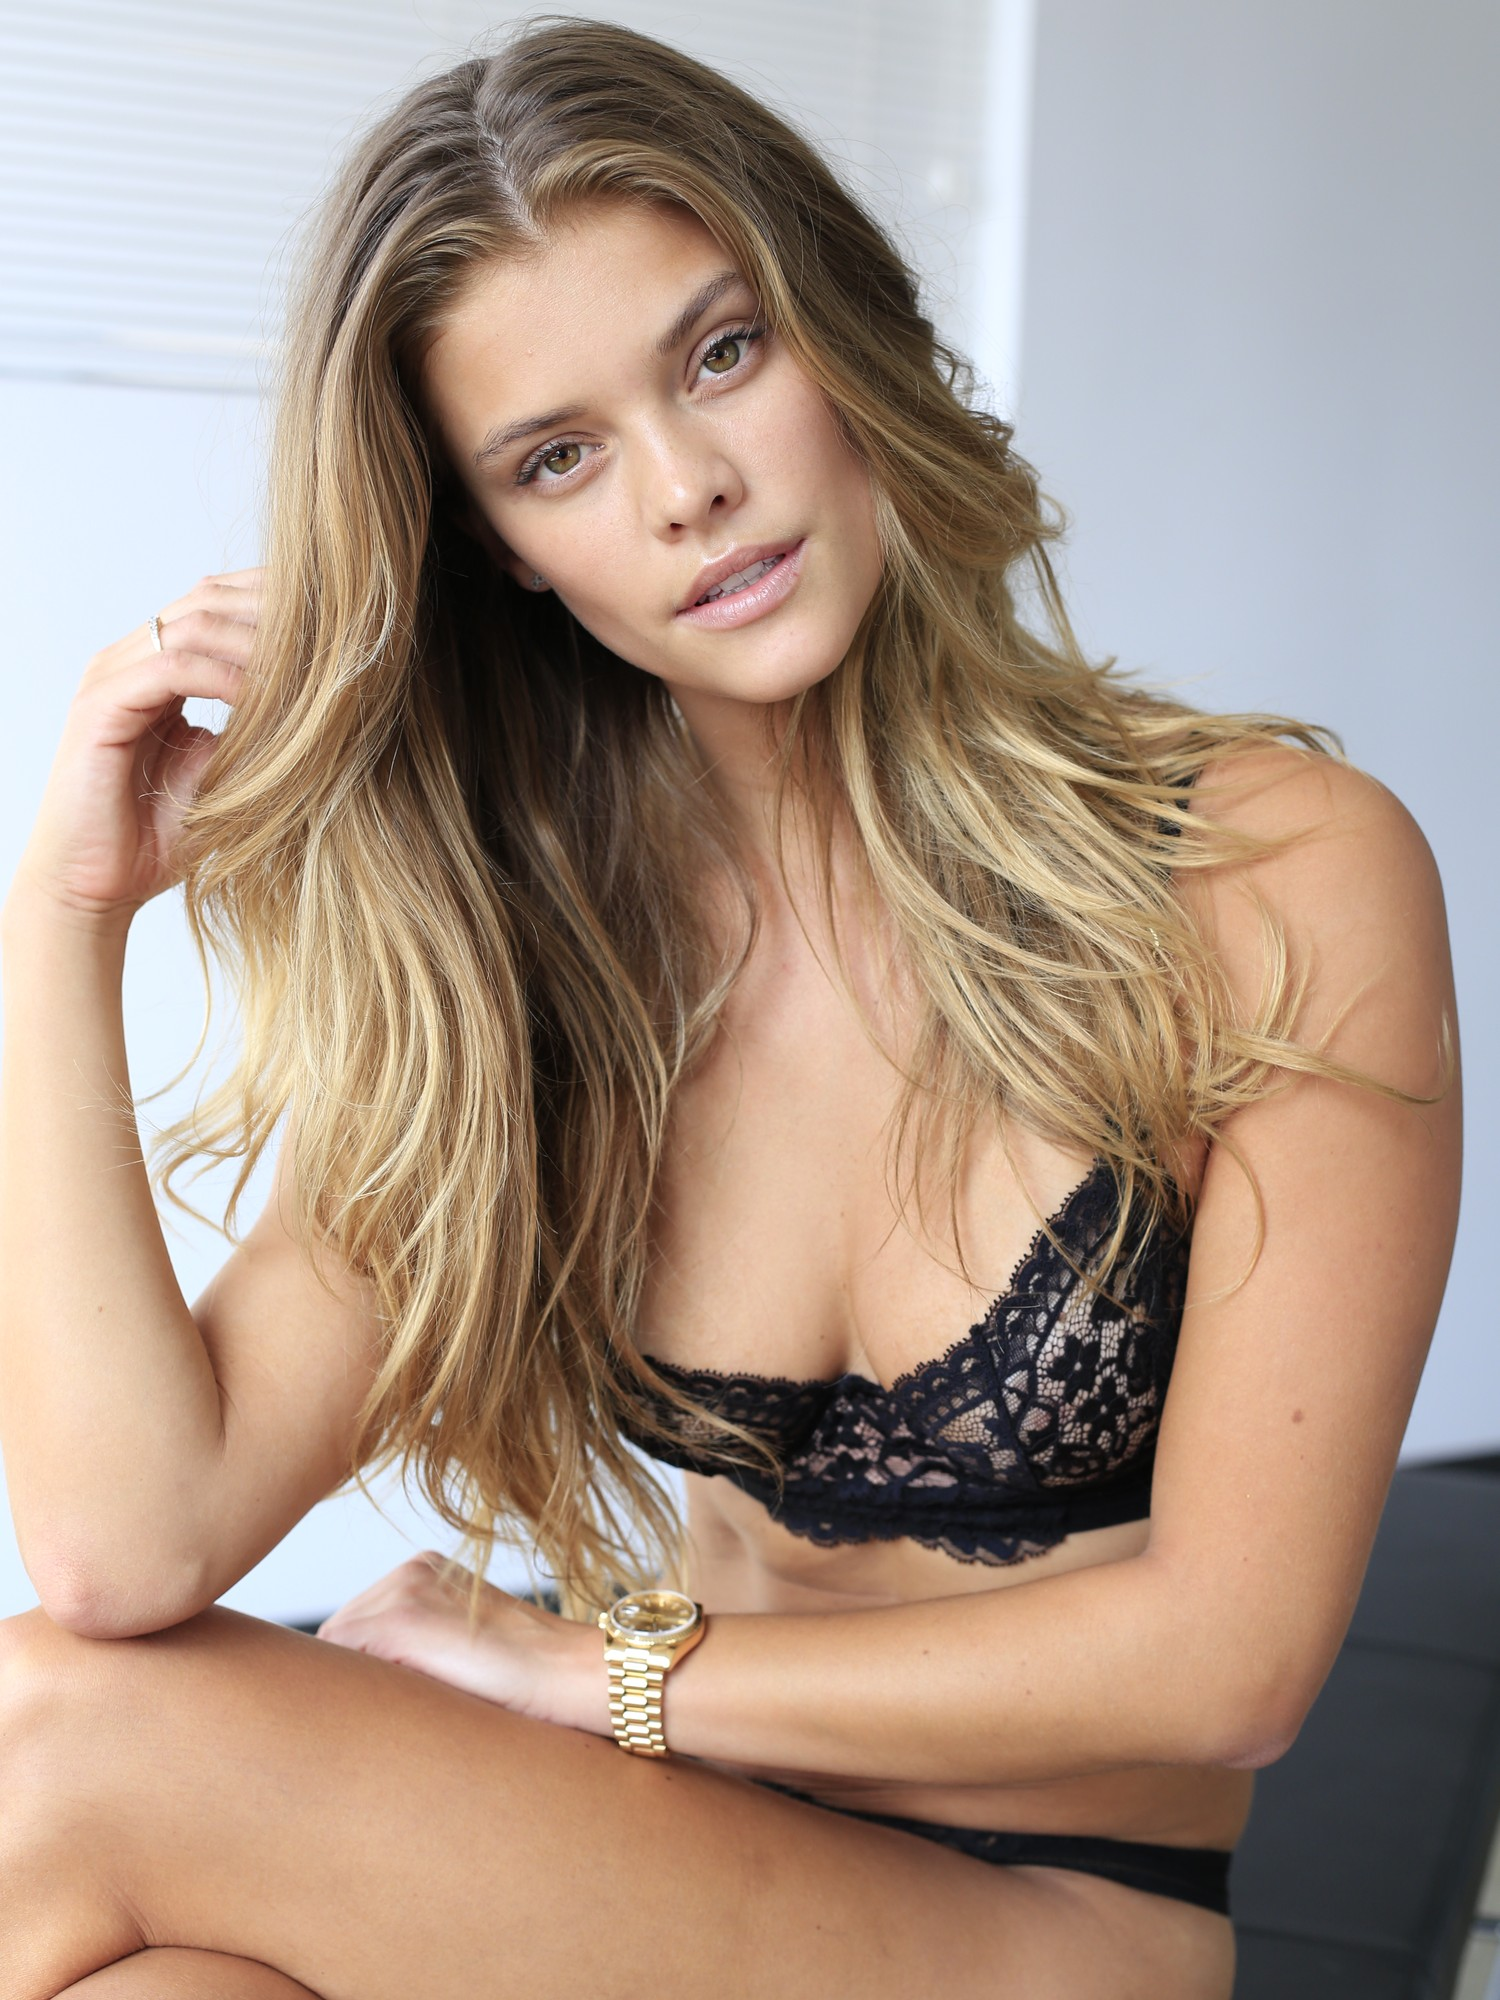 nina-agdal-see-through-bra-elite-models-05